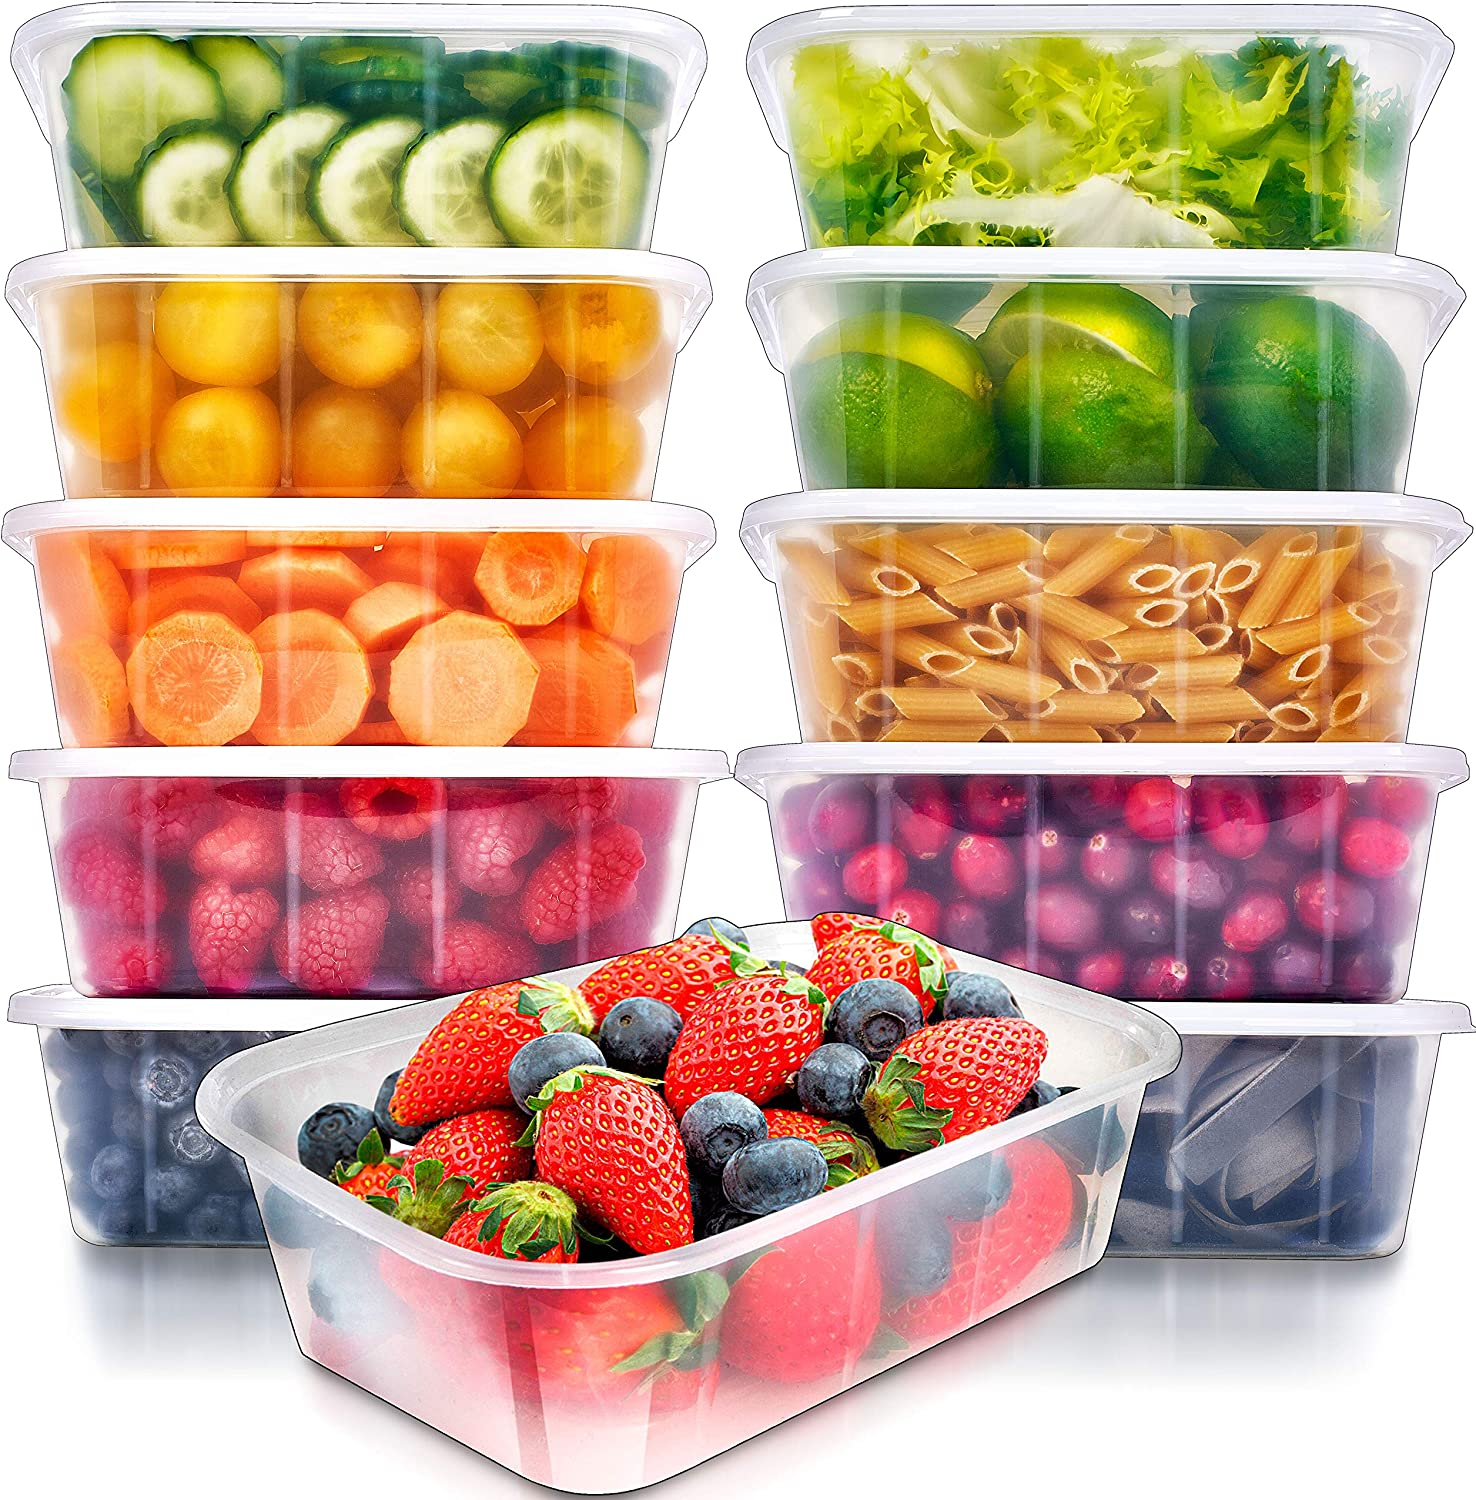 Food Storage Containers with Lids (10 Pack, 25 Ounce) - Food Containers Meal Prep Plastic Containers with Lids Food Prep Containers Deli Containers with Lids Freezer Containers by Prep Naturals